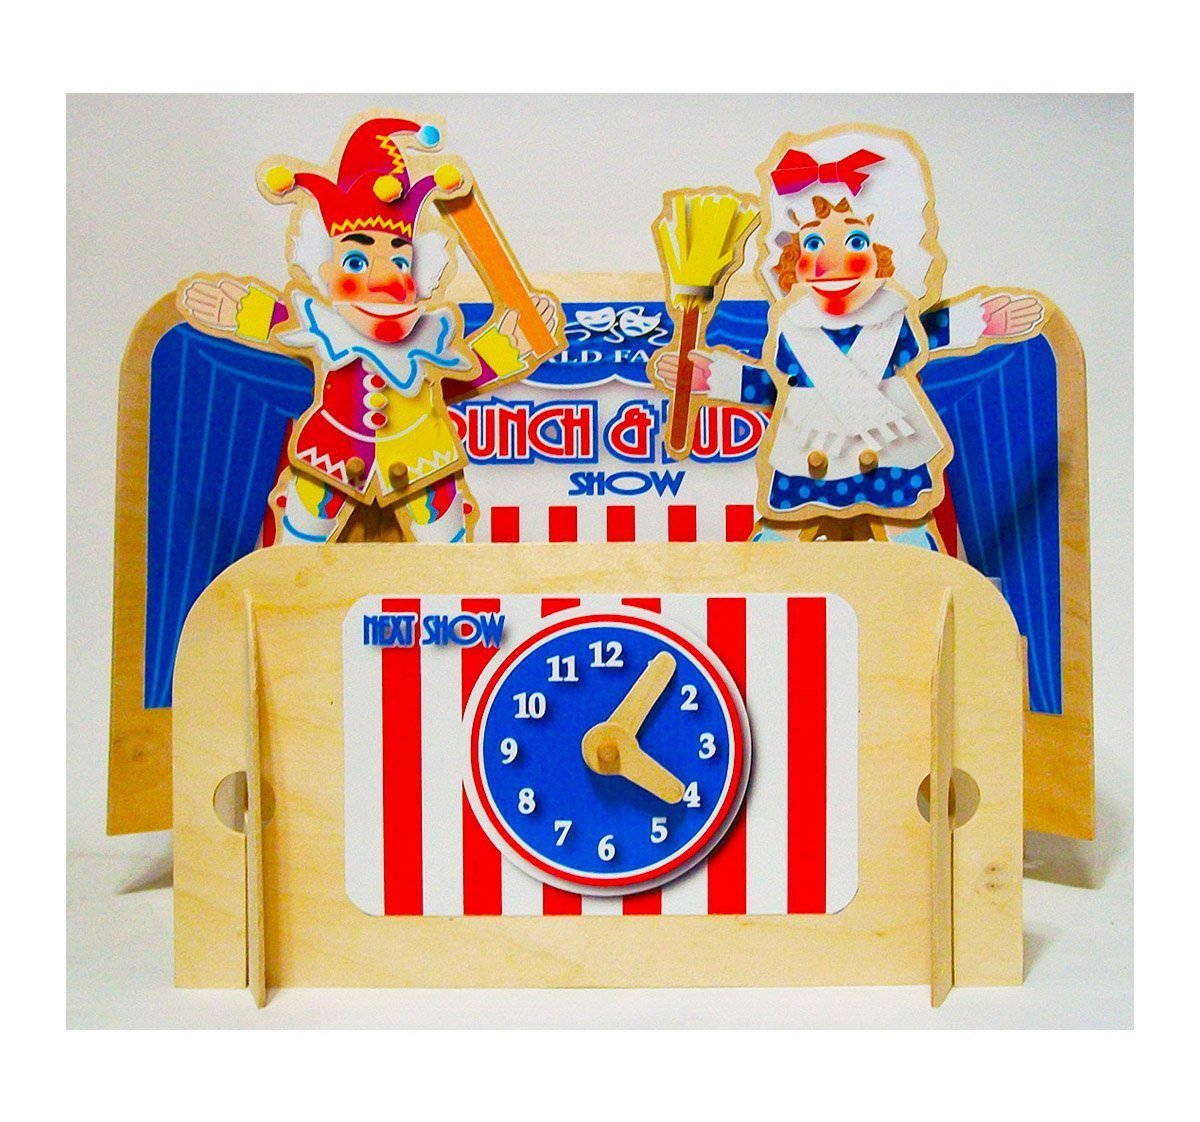 Punch and Judy wooden puppets with table top puppet theater, showtime clock and two metal puppet stands